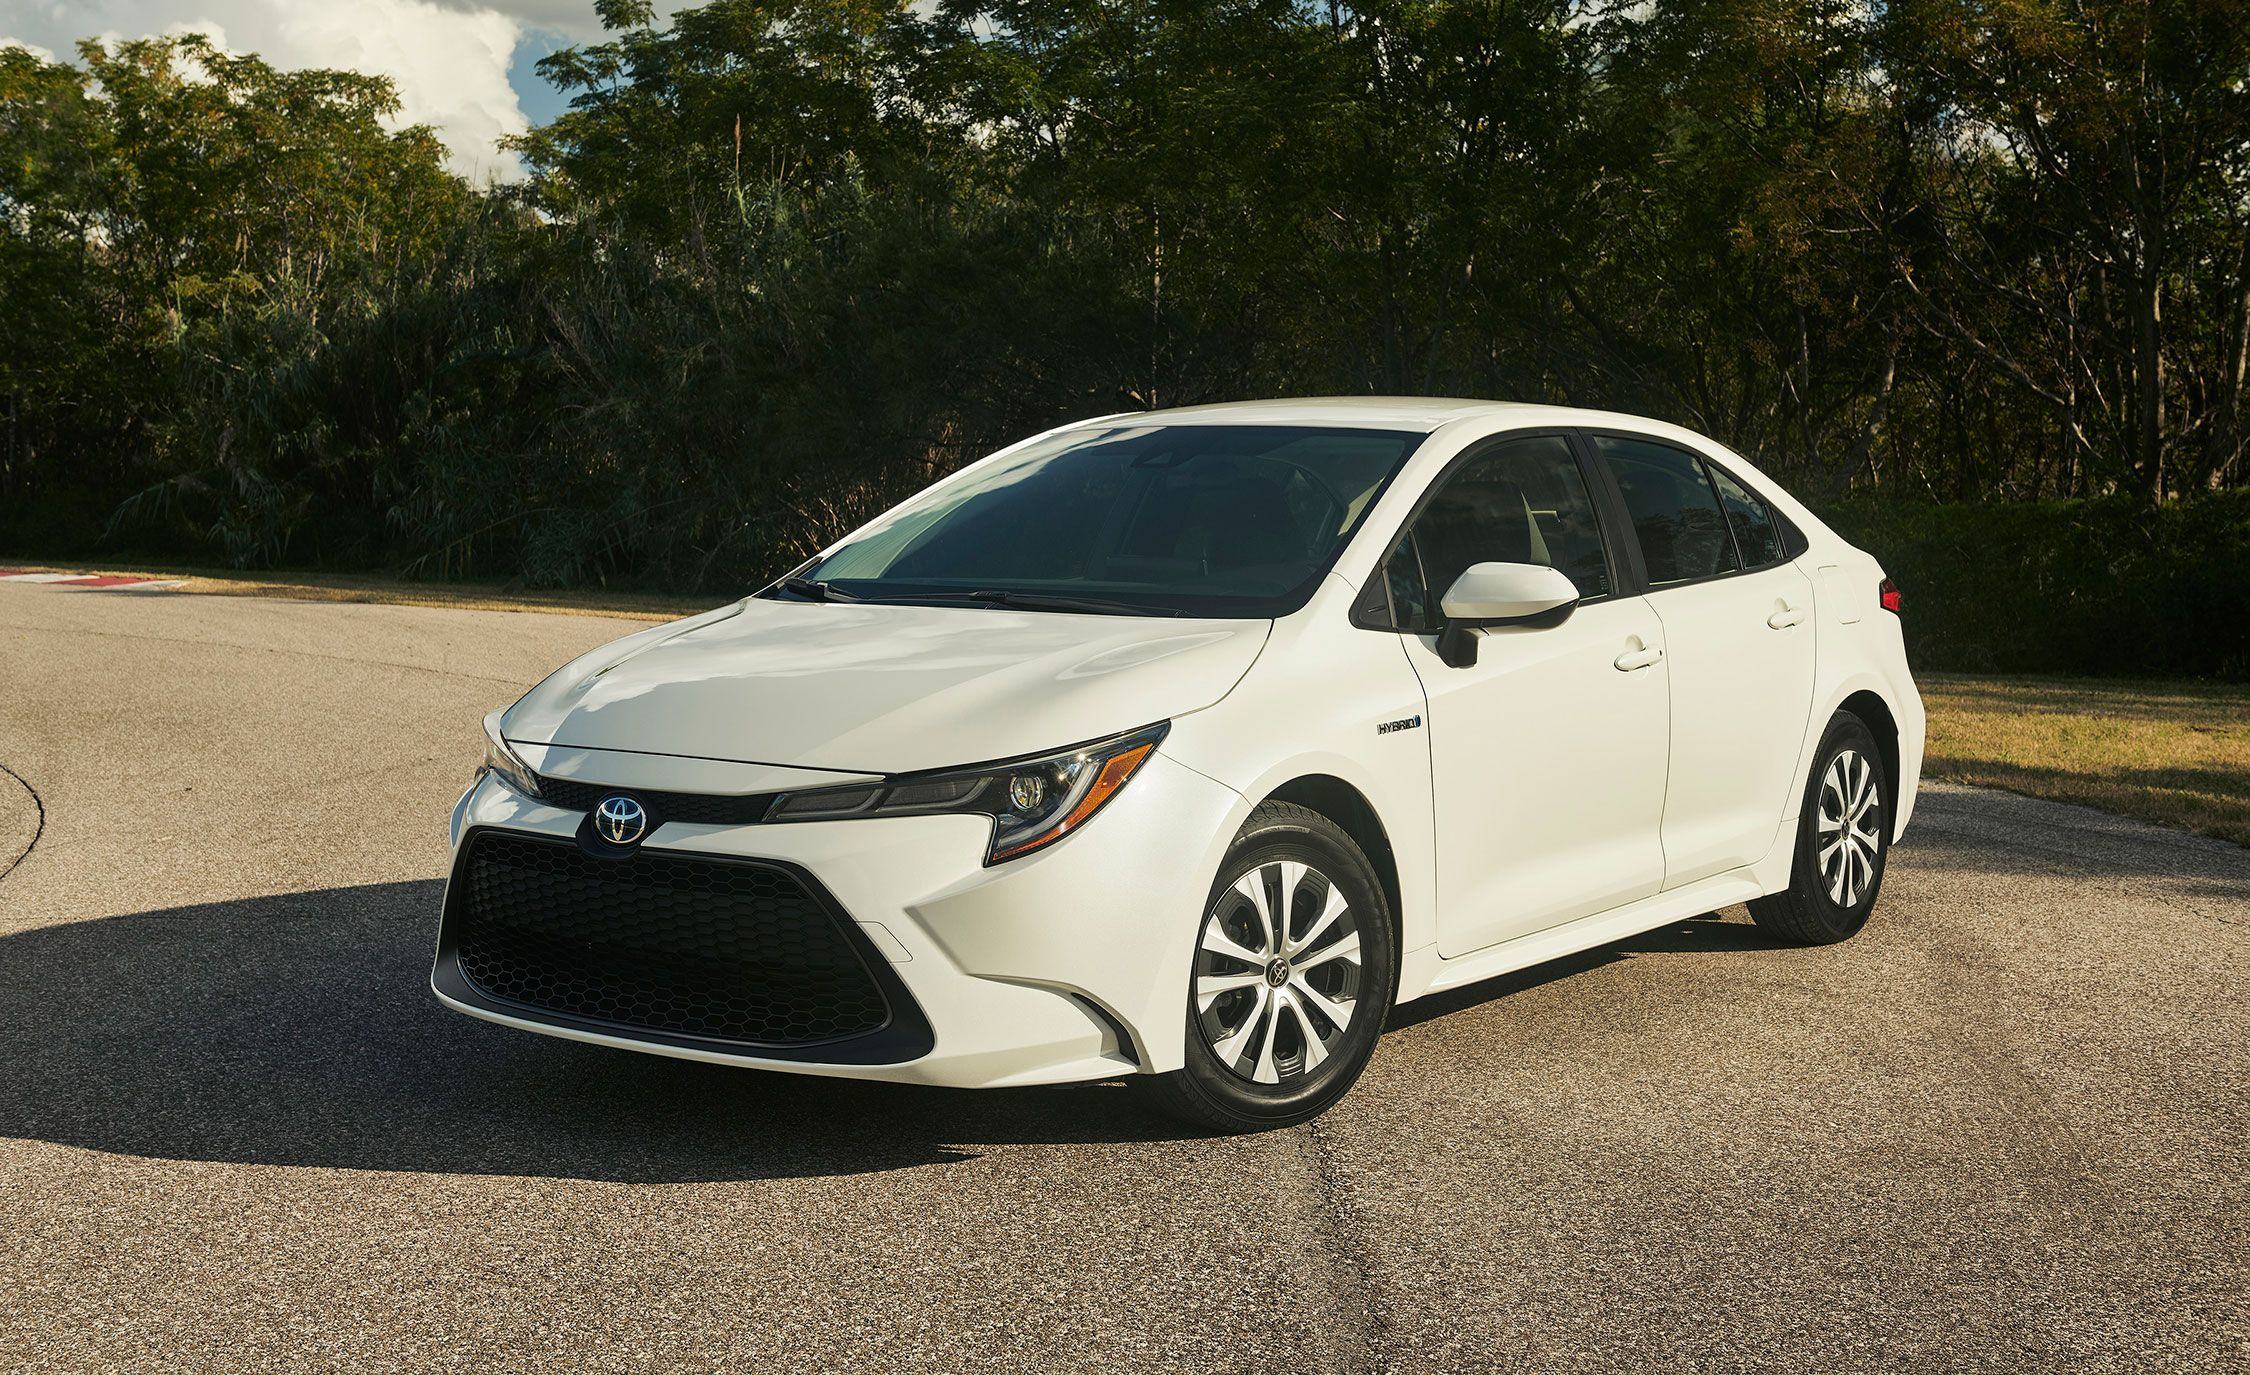 Toyota Hybrid Cars >> 25 Of The Best Hybrid Cars In 2019 Every New Hybrid For Sale